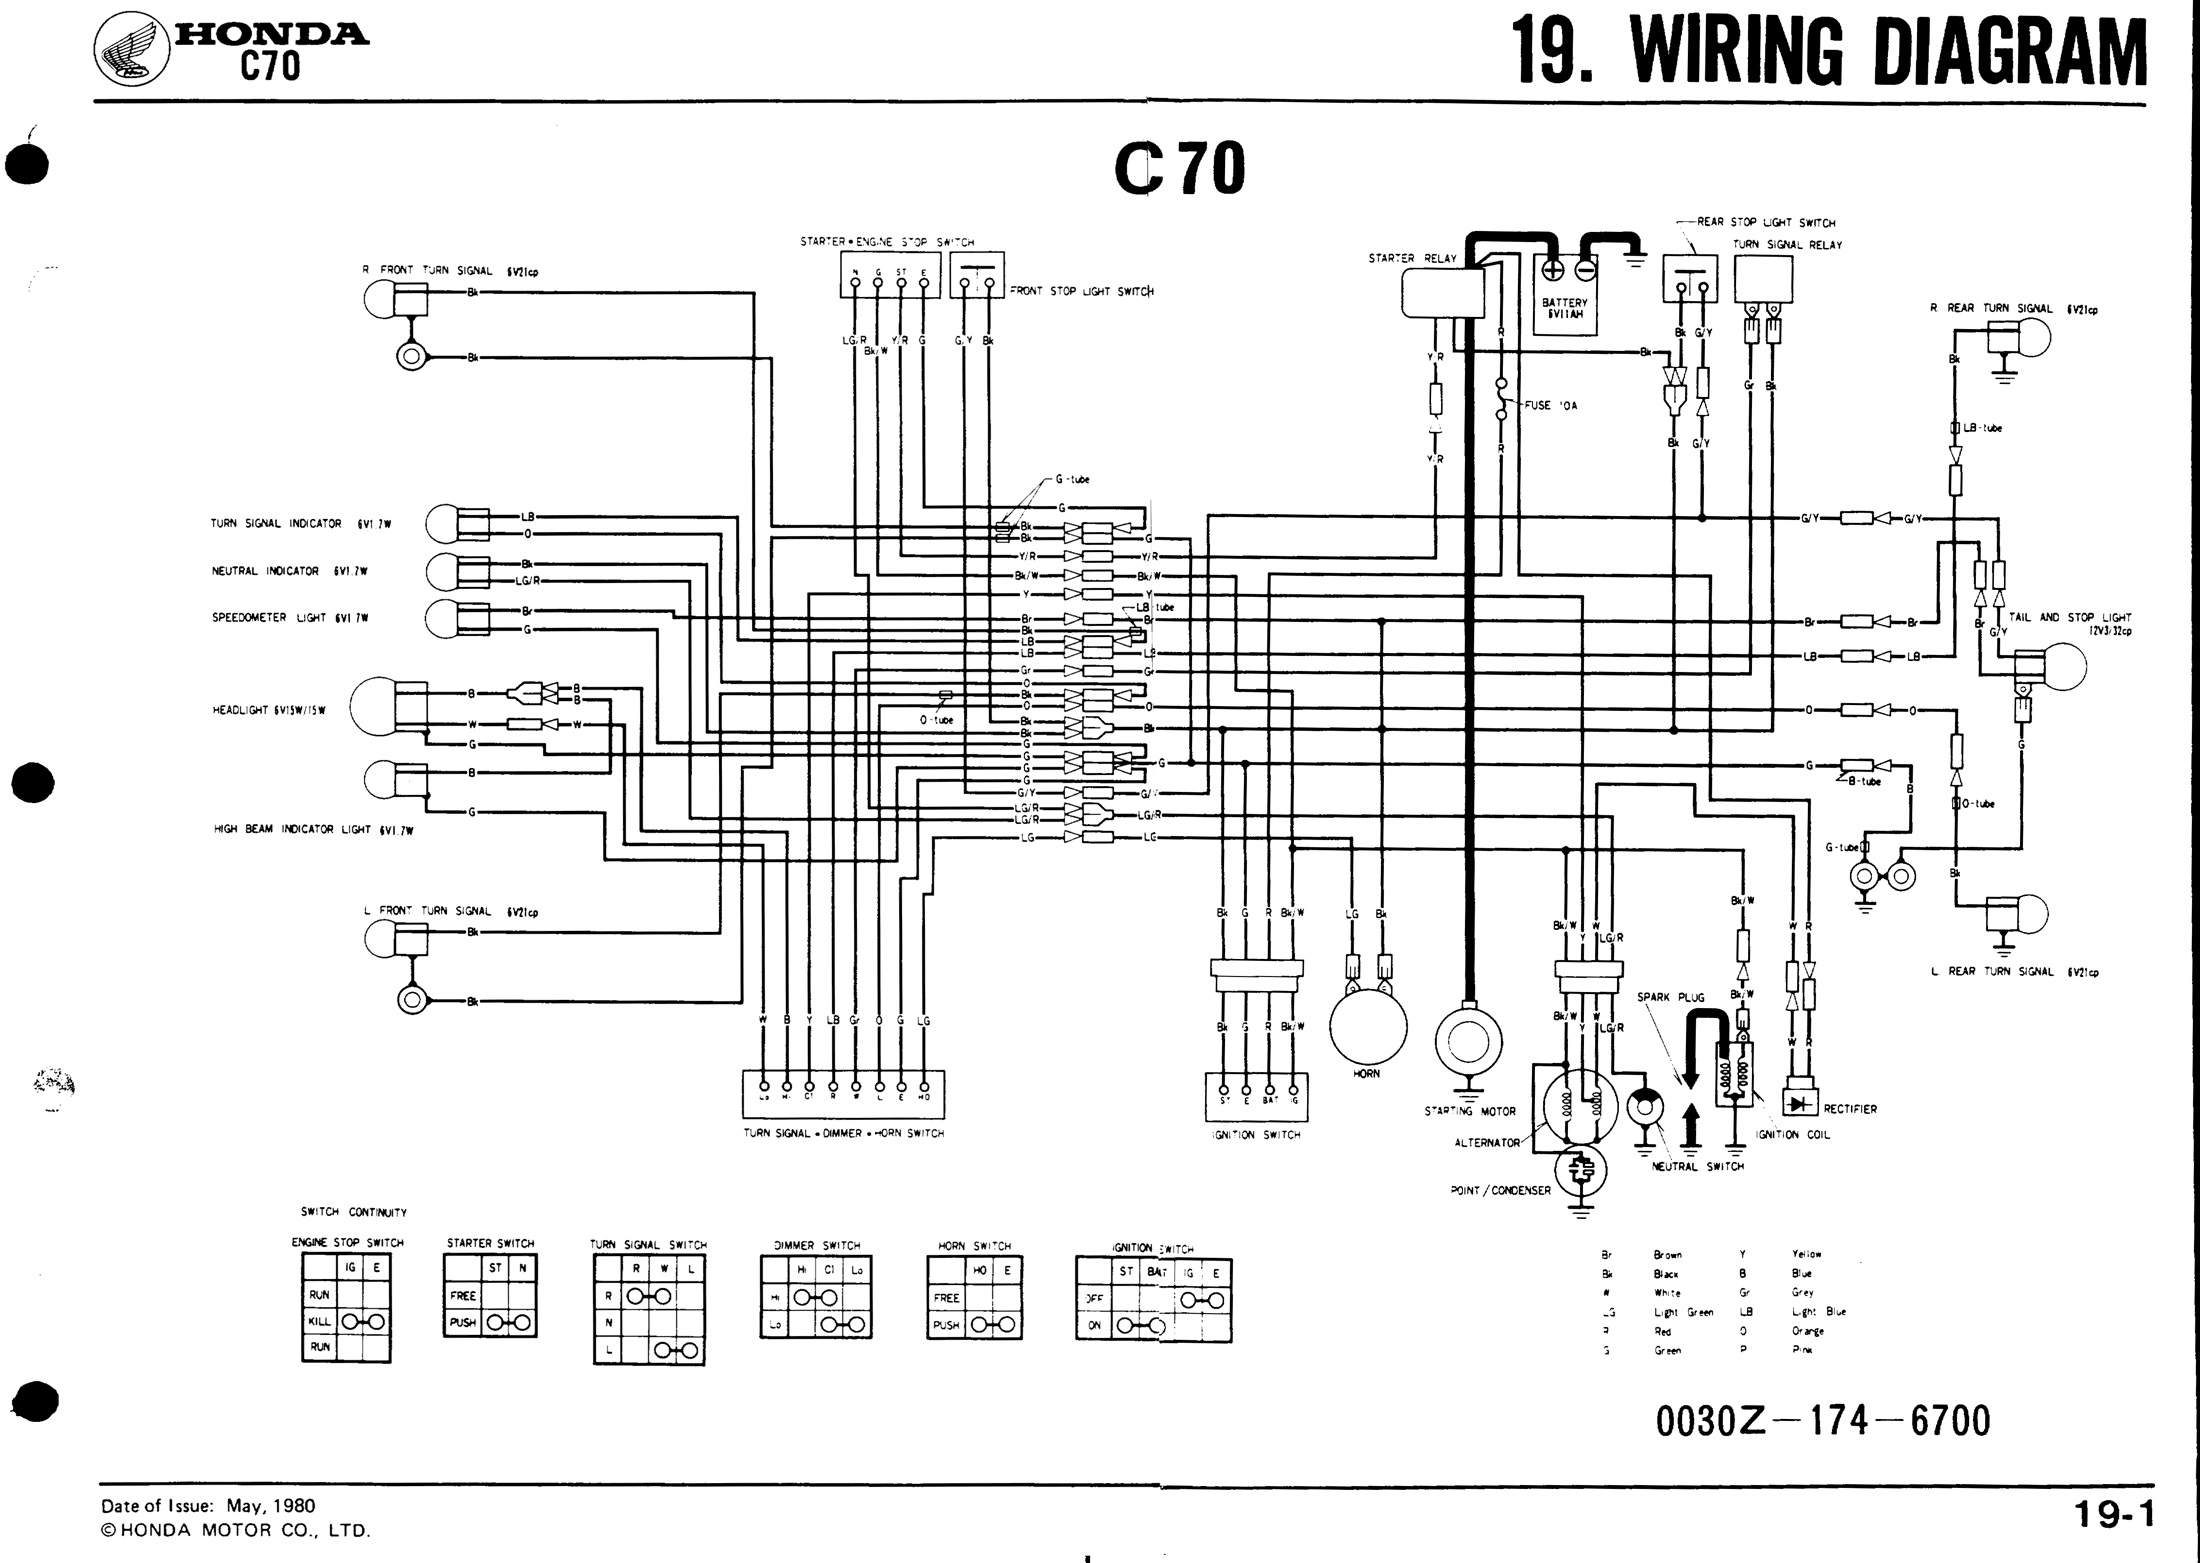 wiring_diagram_s diagram for honda c70 wiring wiring diagrams instruction c70 wiring diagram at soozxer.org